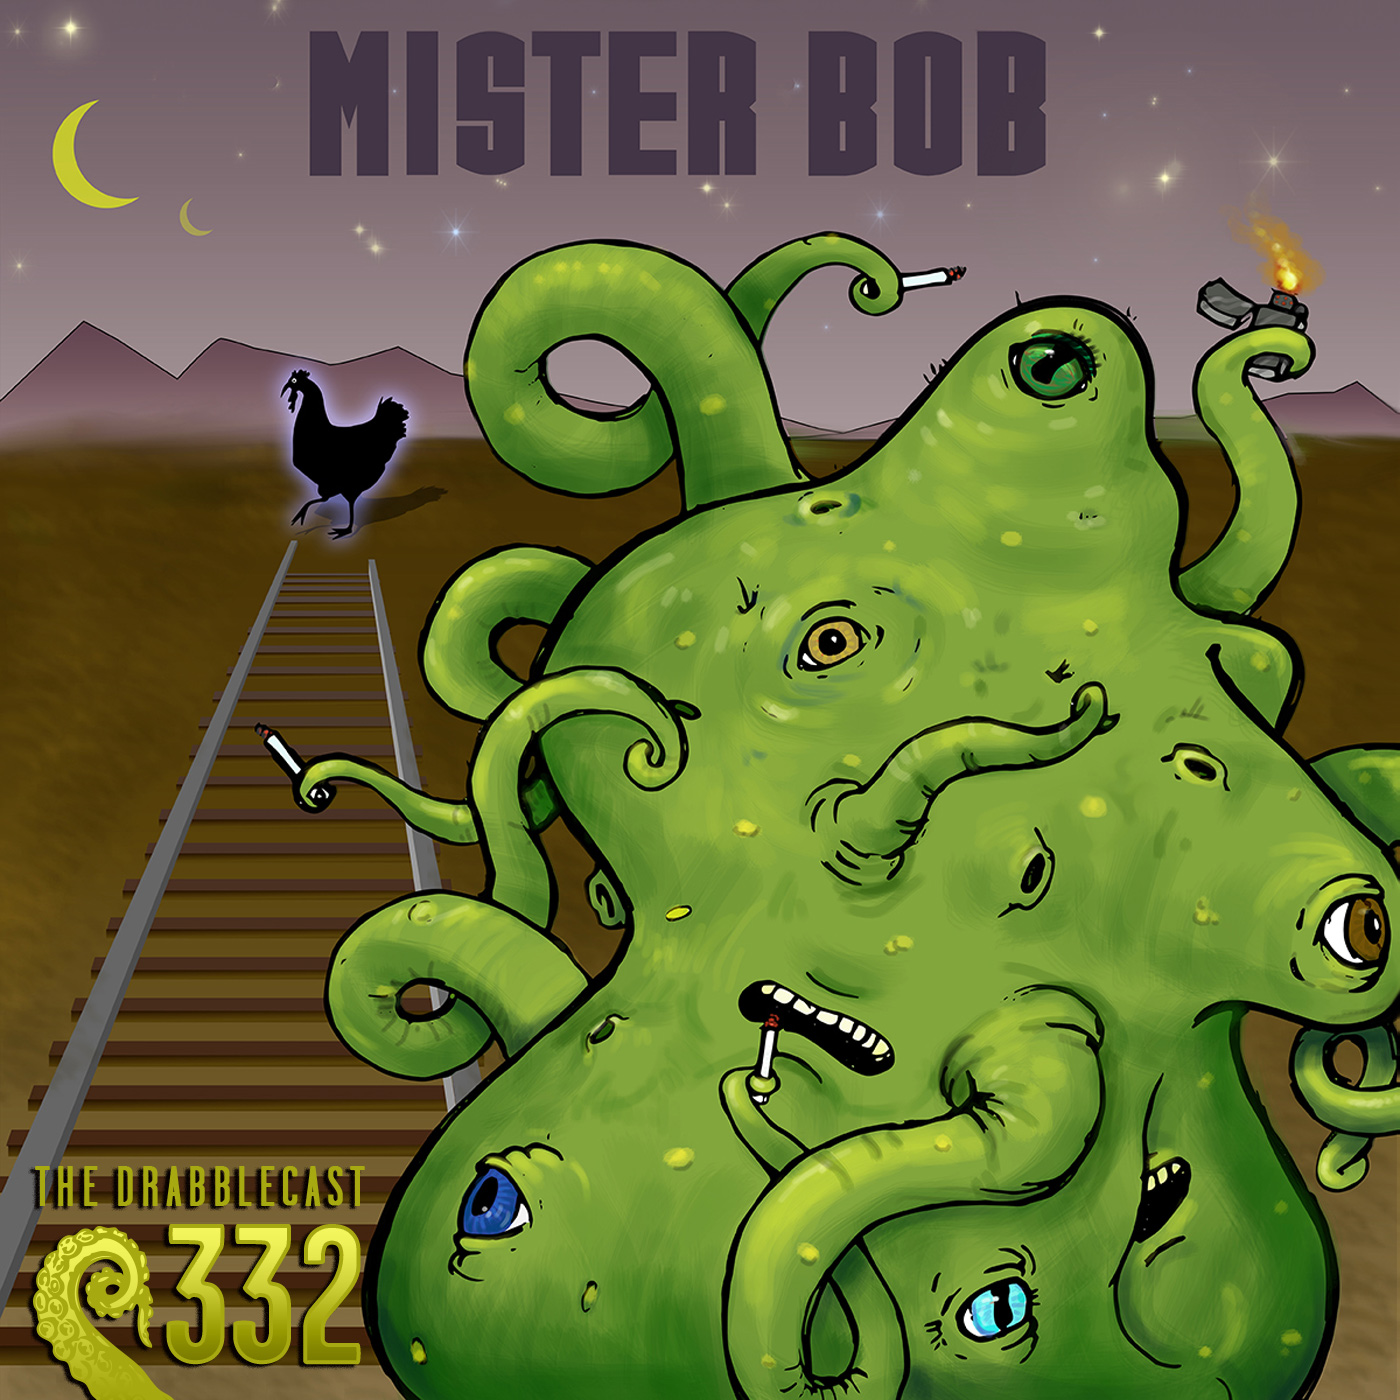 Cover for Drabblecast 332, Mr. Bob, by David Krummenacher